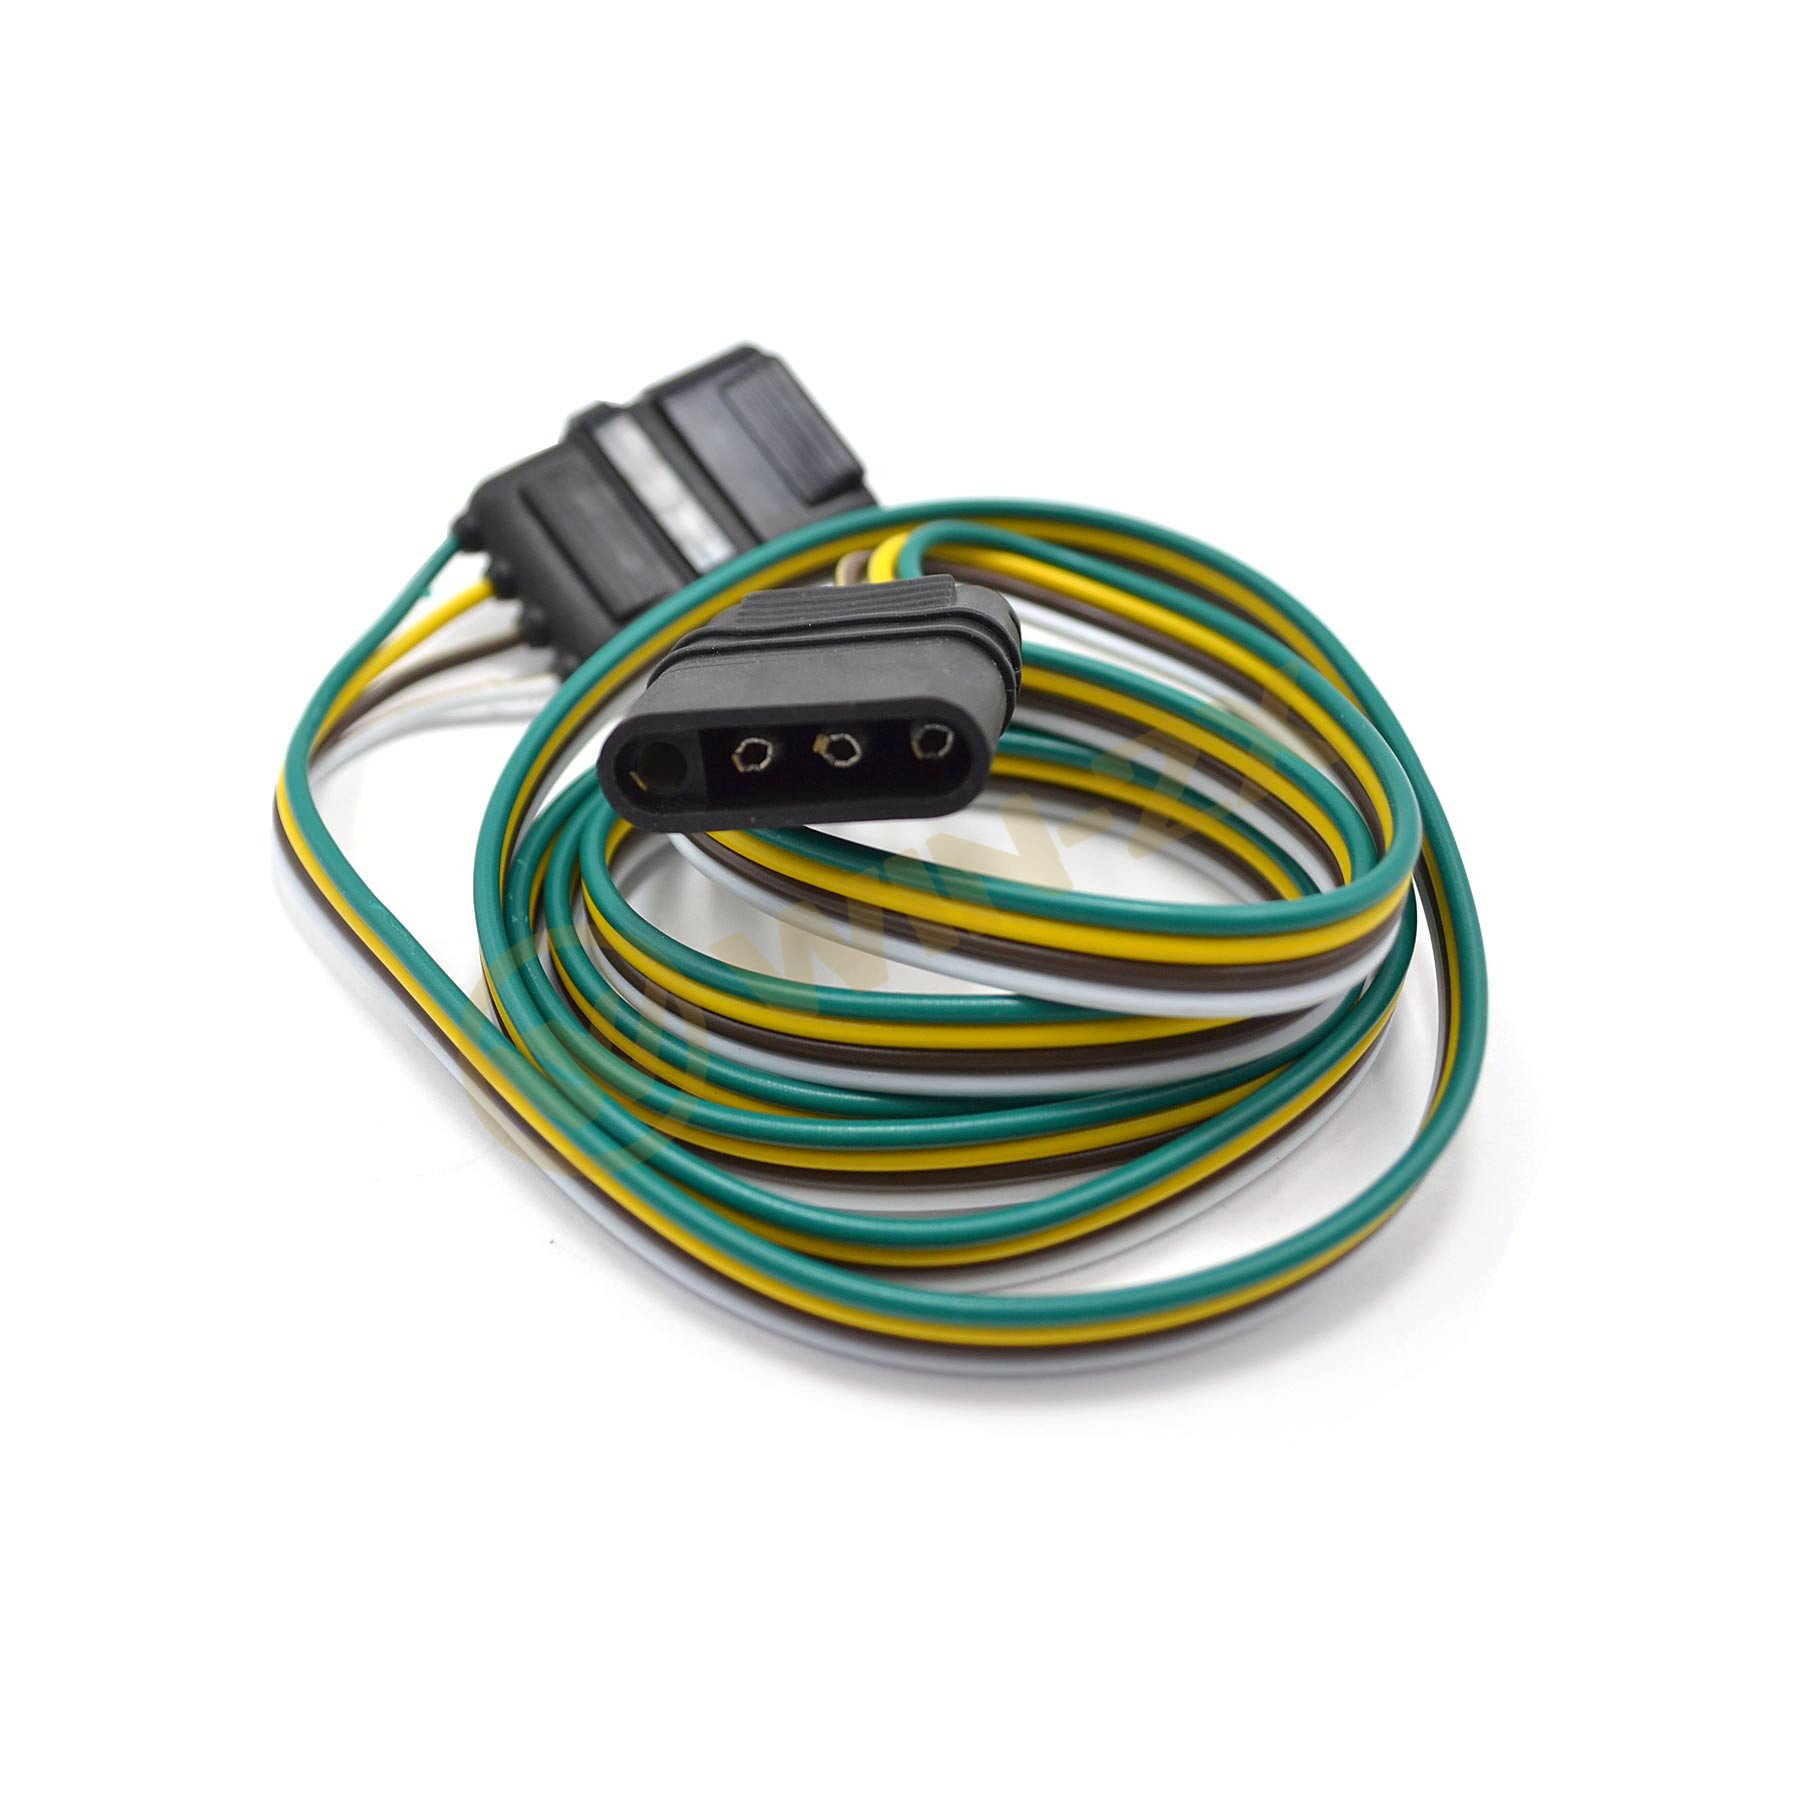 1pc 12v 4 Way Flat Rv Tow Bar Electrical Trailer Socket Plug Wiring This Connectors Harness Unit Has A Male On One Side And Female The Opposite That Can Expand